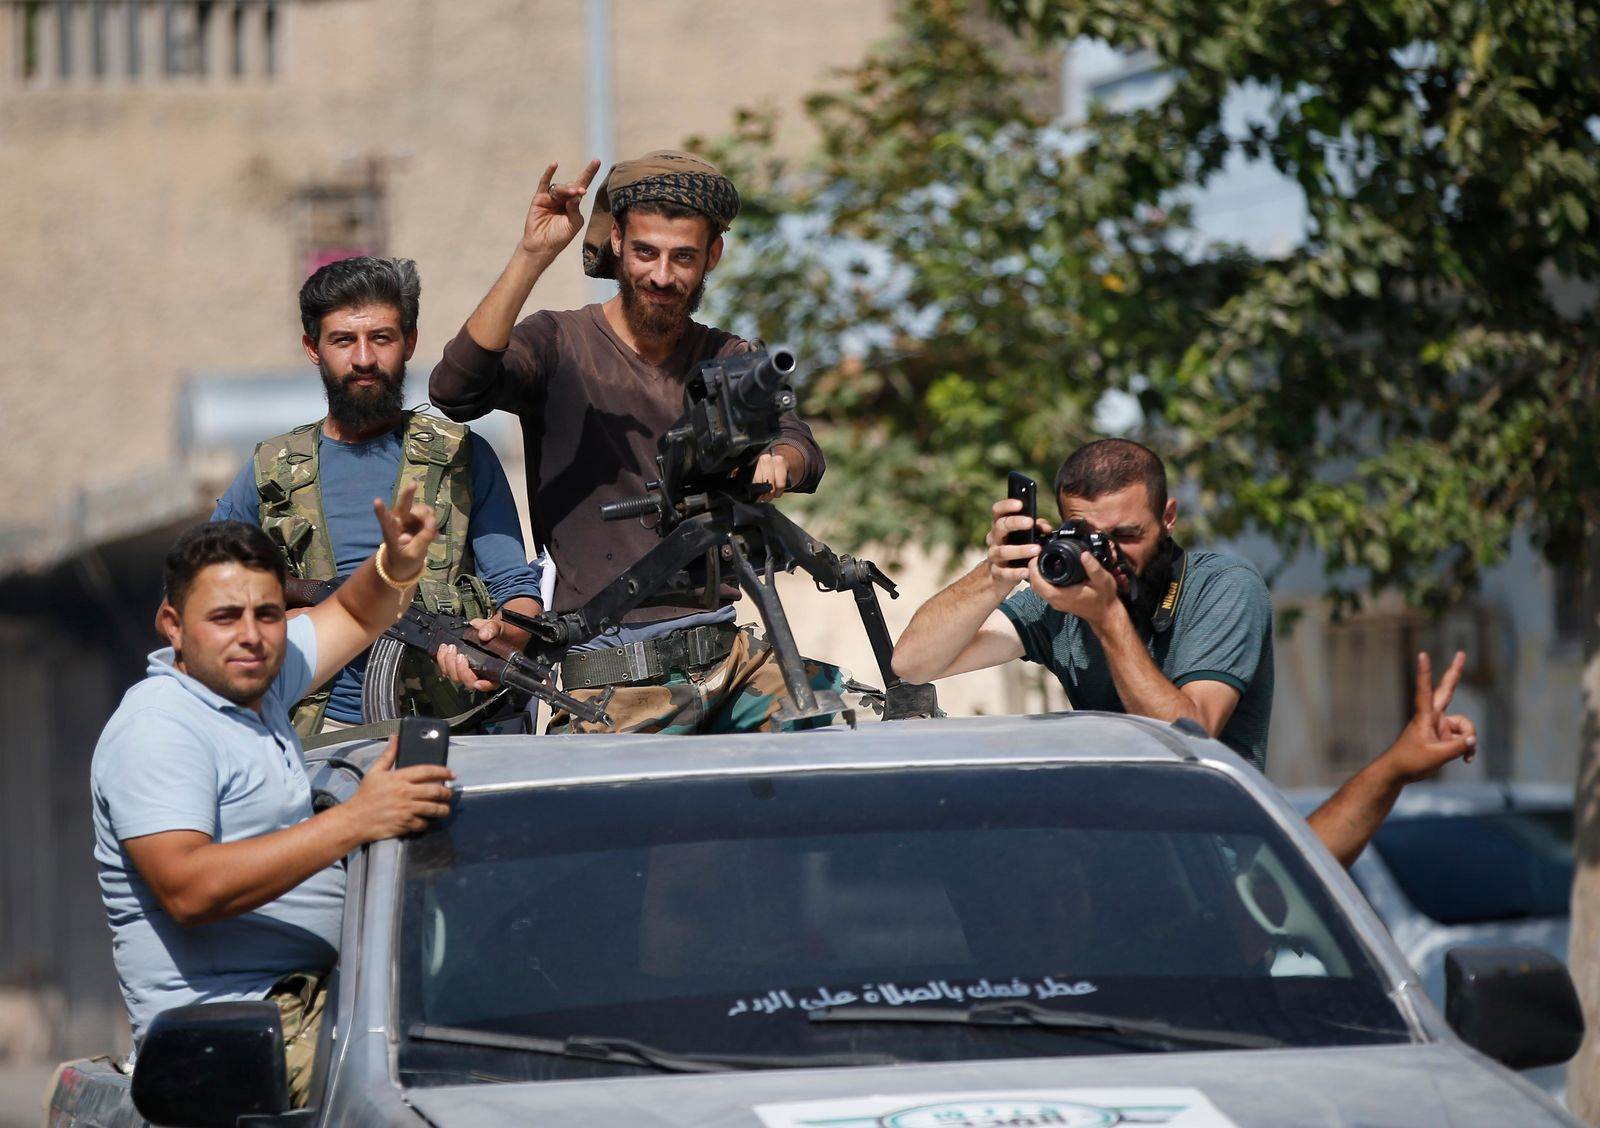 Turkish-backed Syrian opposition fighters cheer from a car as they drive around the border town of Akcakale, Sanliurfa province, southeastern Turkey, on their way to Tal Abyad, Syria, Monday, Oct. 14, 2019. (AP Photo/Lefteris Pitarakis)